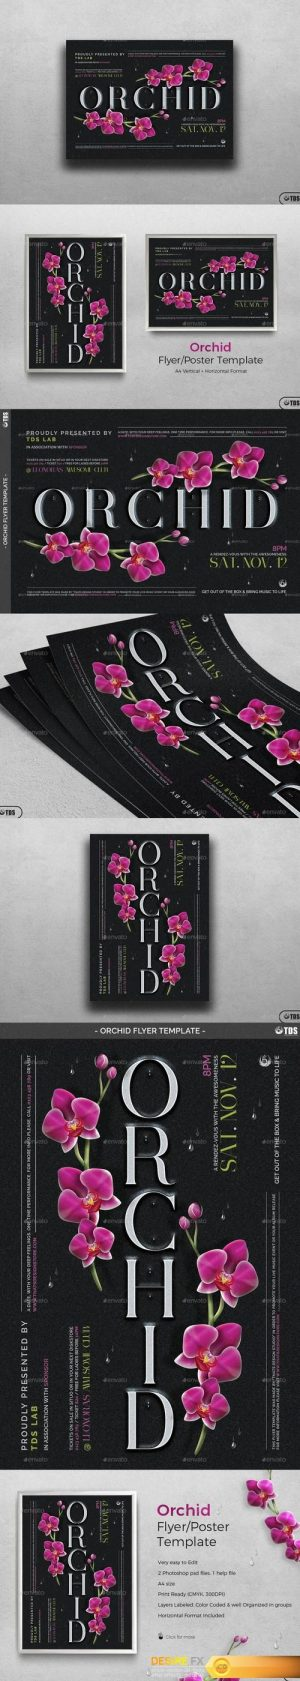 Orchid Flyer Template 19375664